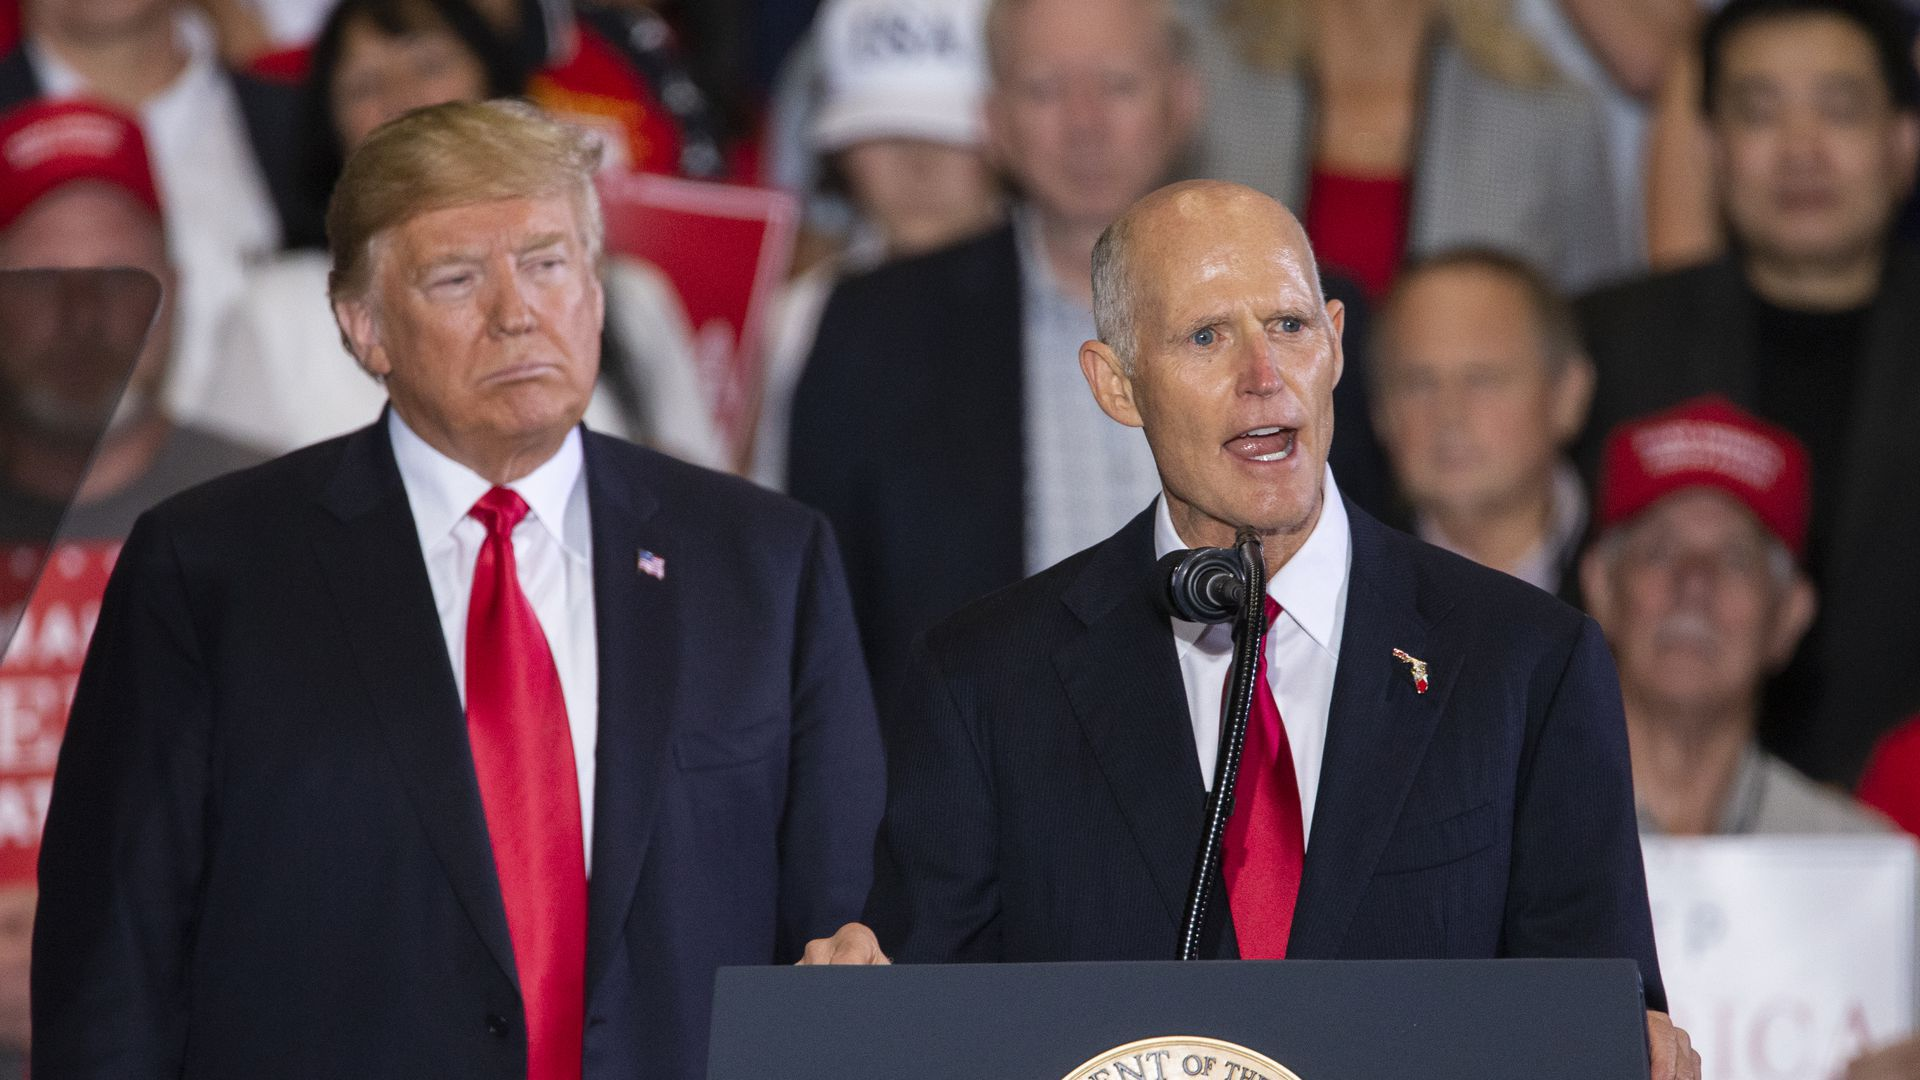 President Trump stands with Rick Scott at a campaign rally